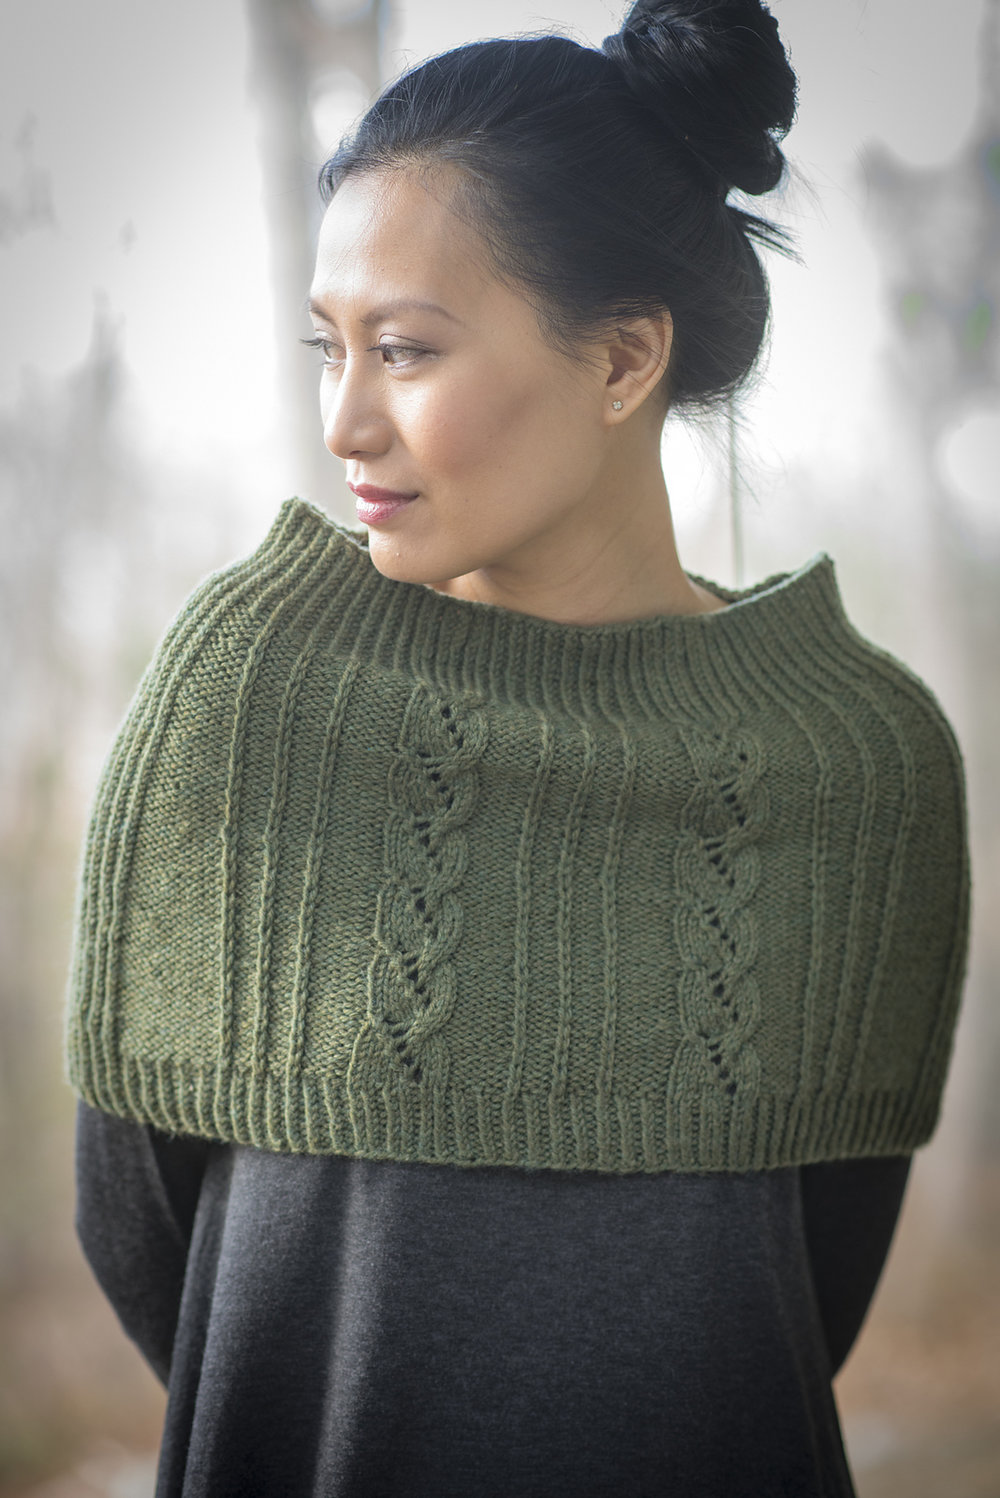 Cavilleri Cowl   by Shannon Cook